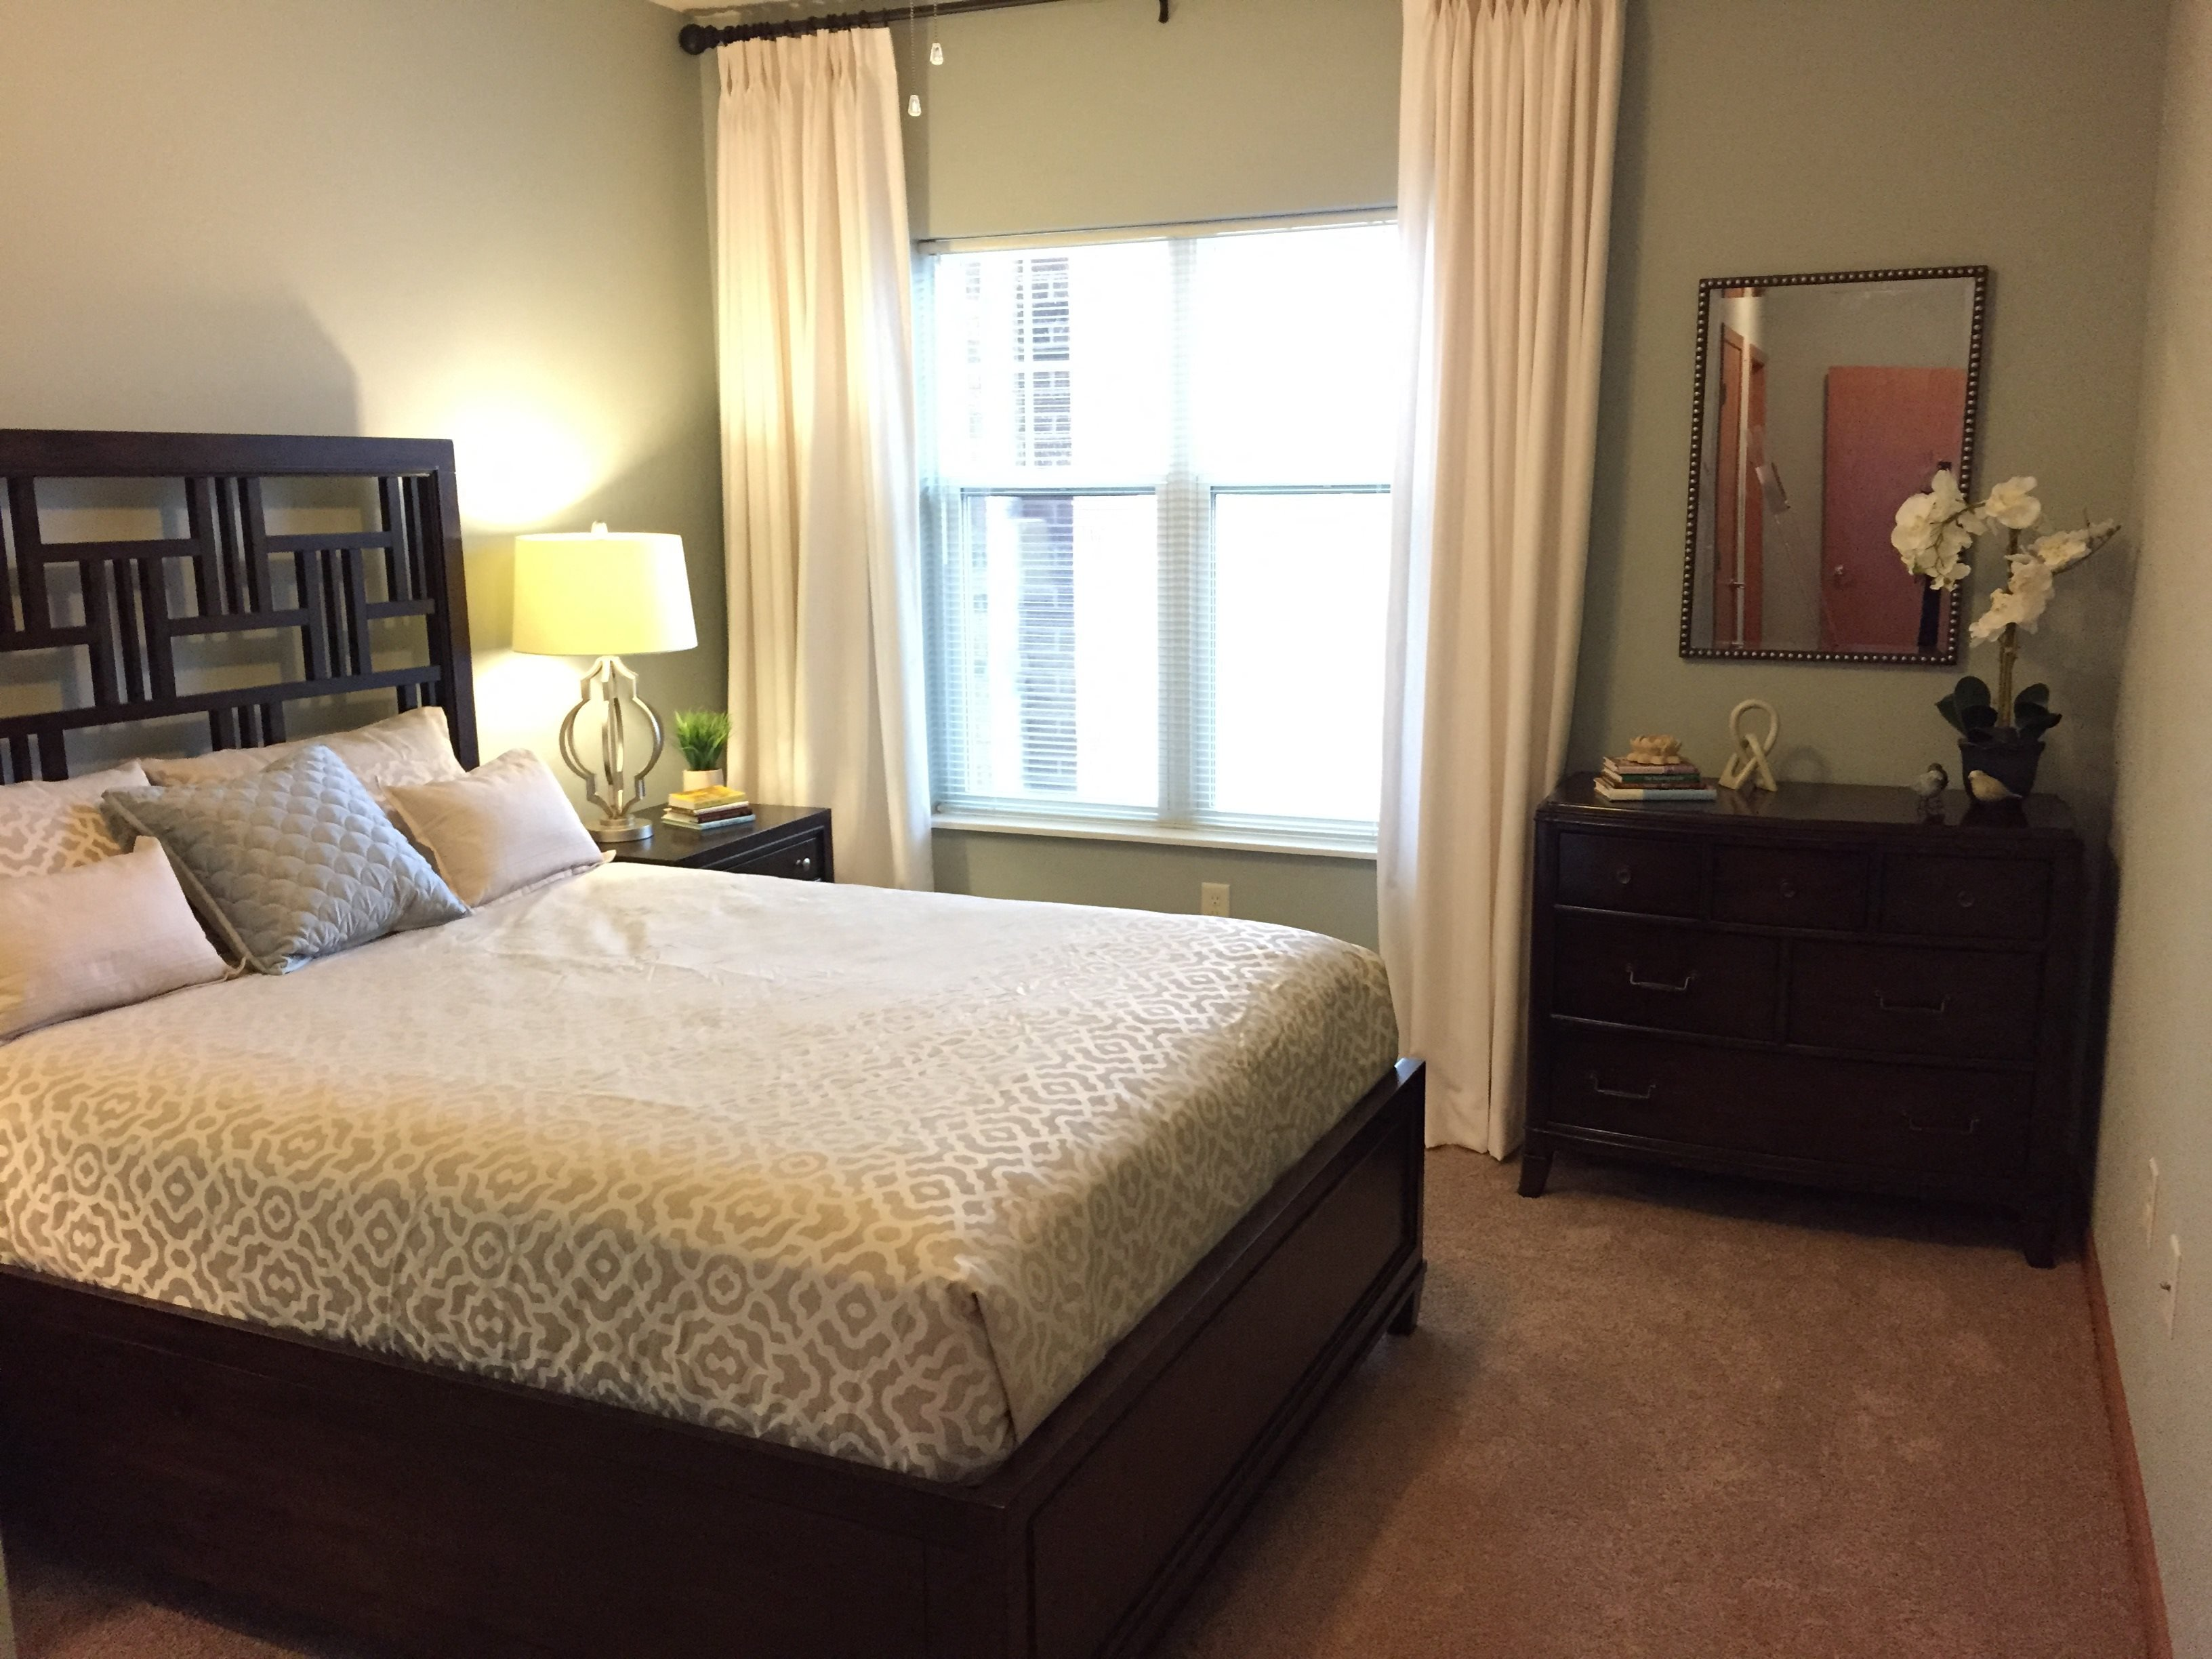 Live in cozy bedrooms at Paragon Place at Bishops Bay, 5240 Bishops Bay Parkway, Middleton, Wisconsin, 53597